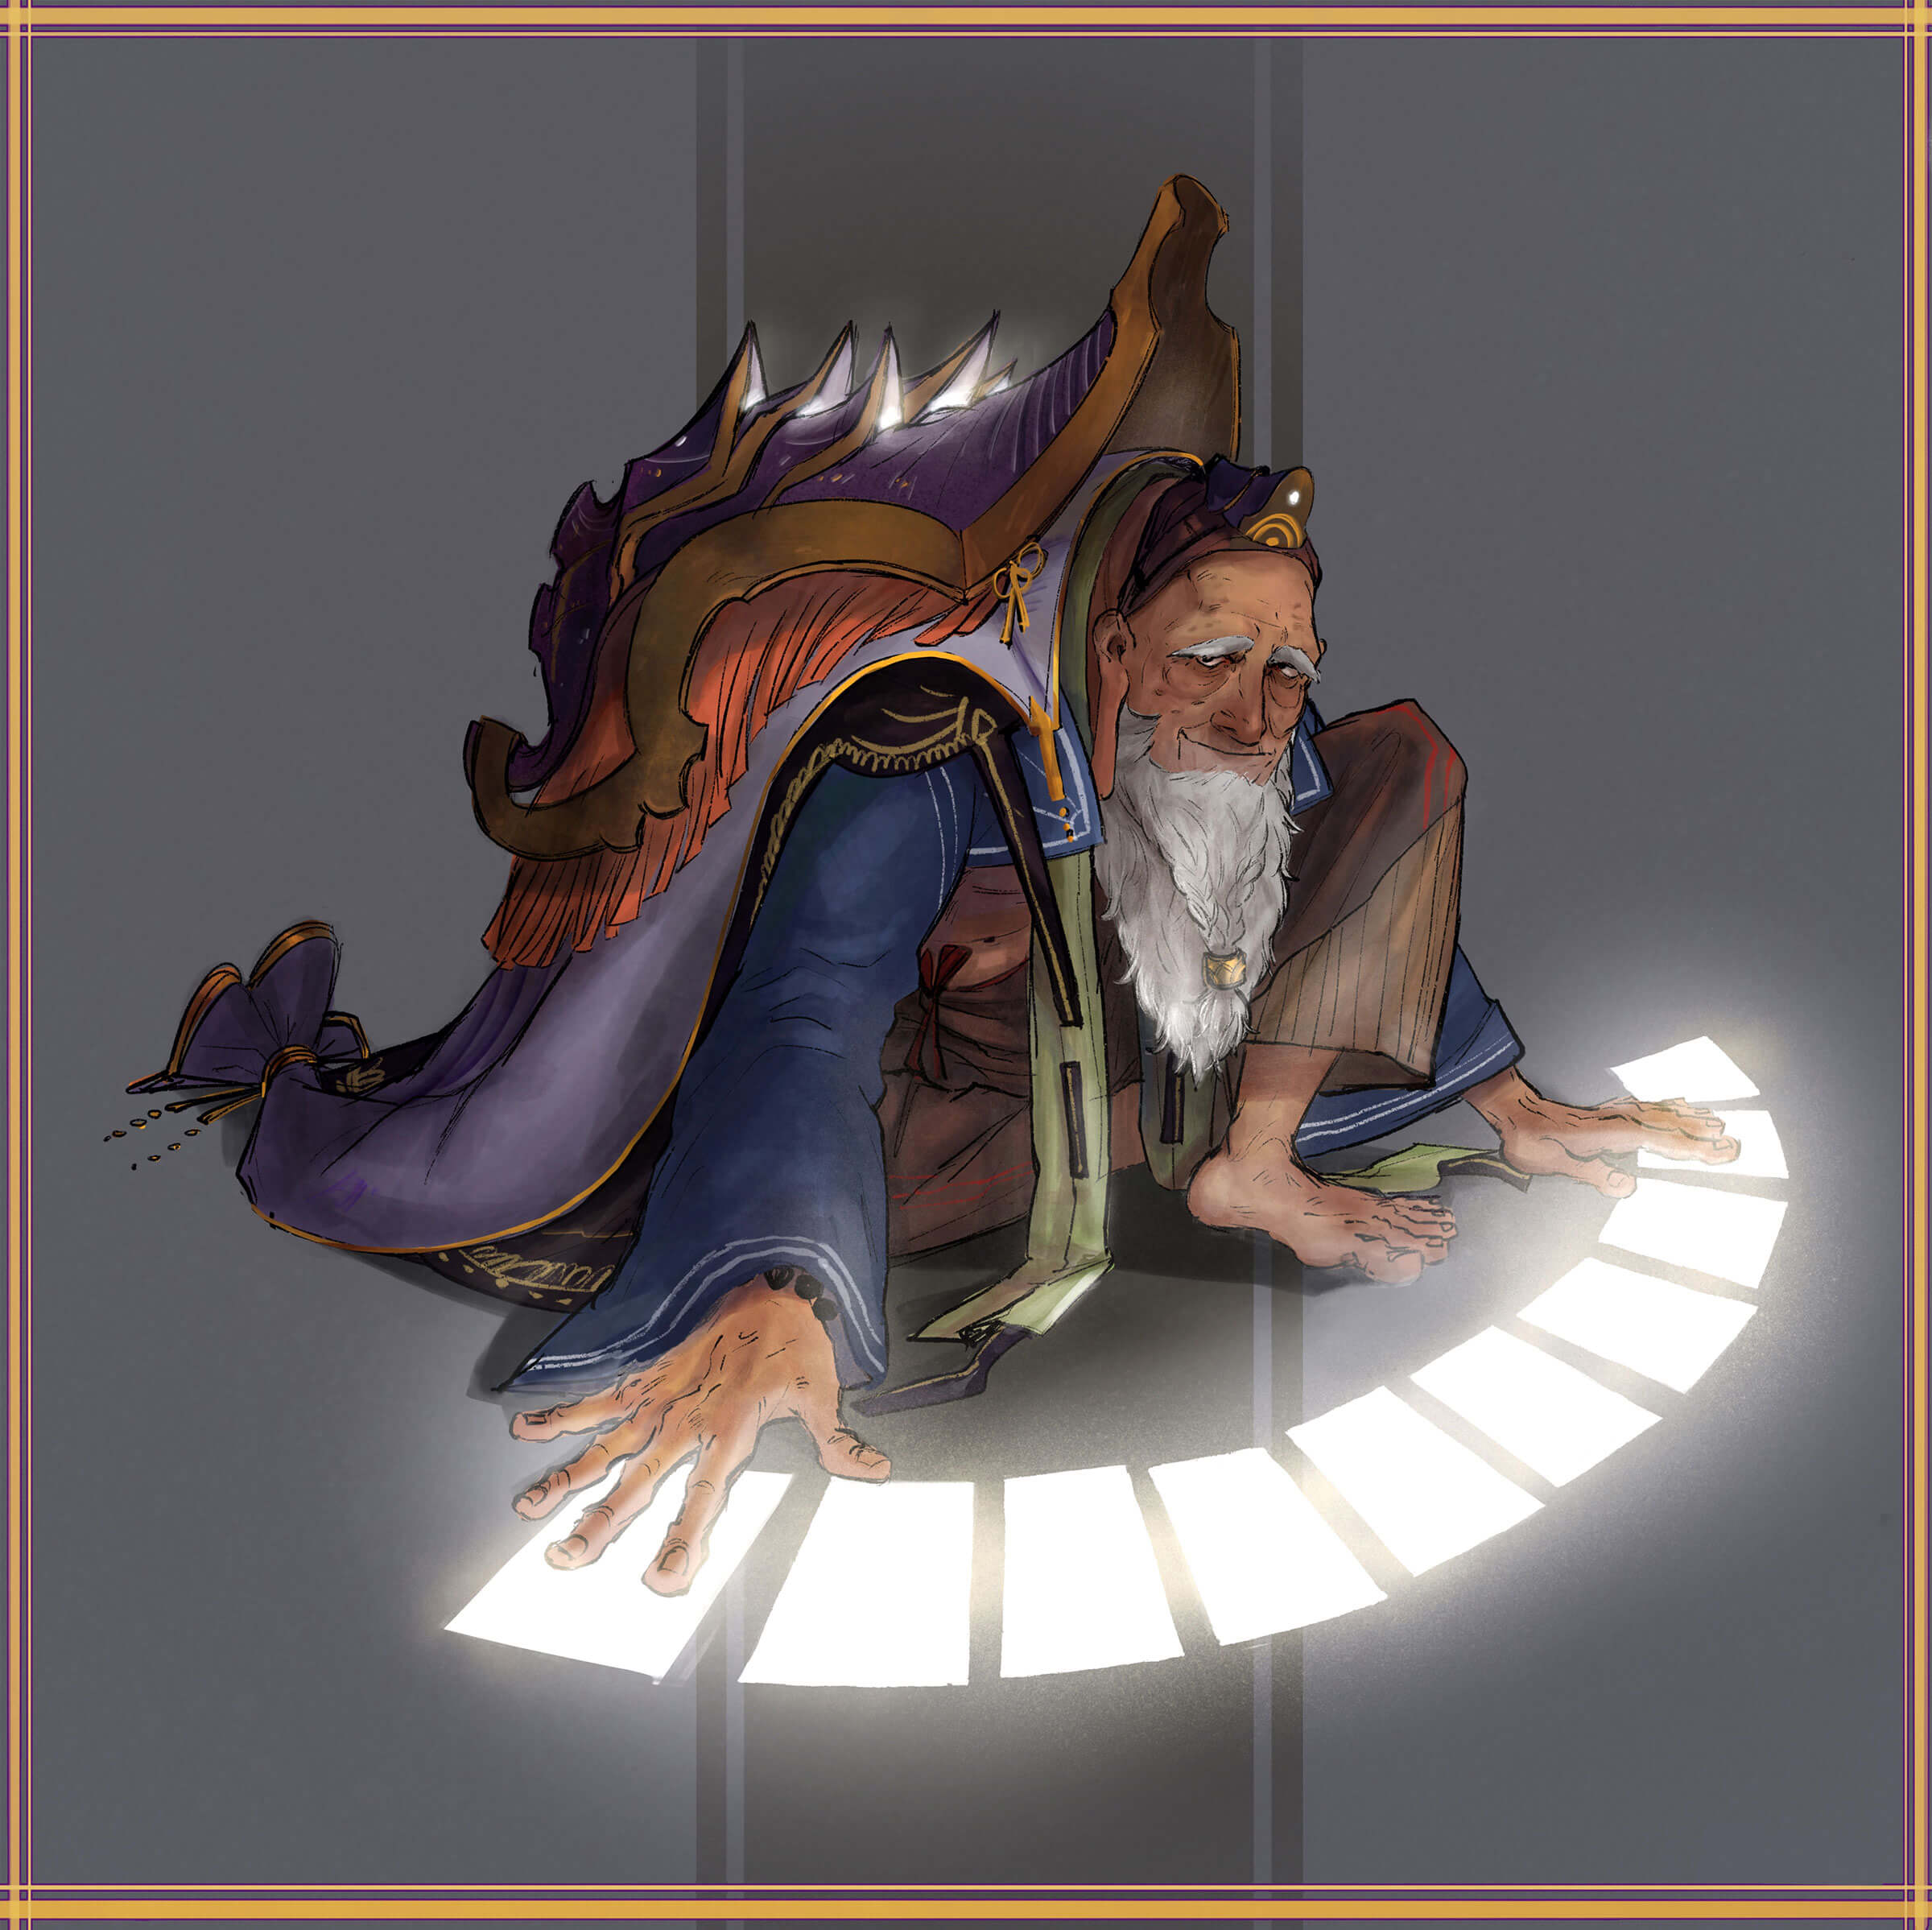 A man with a white beard and purple cape lays out glowing tarot cards